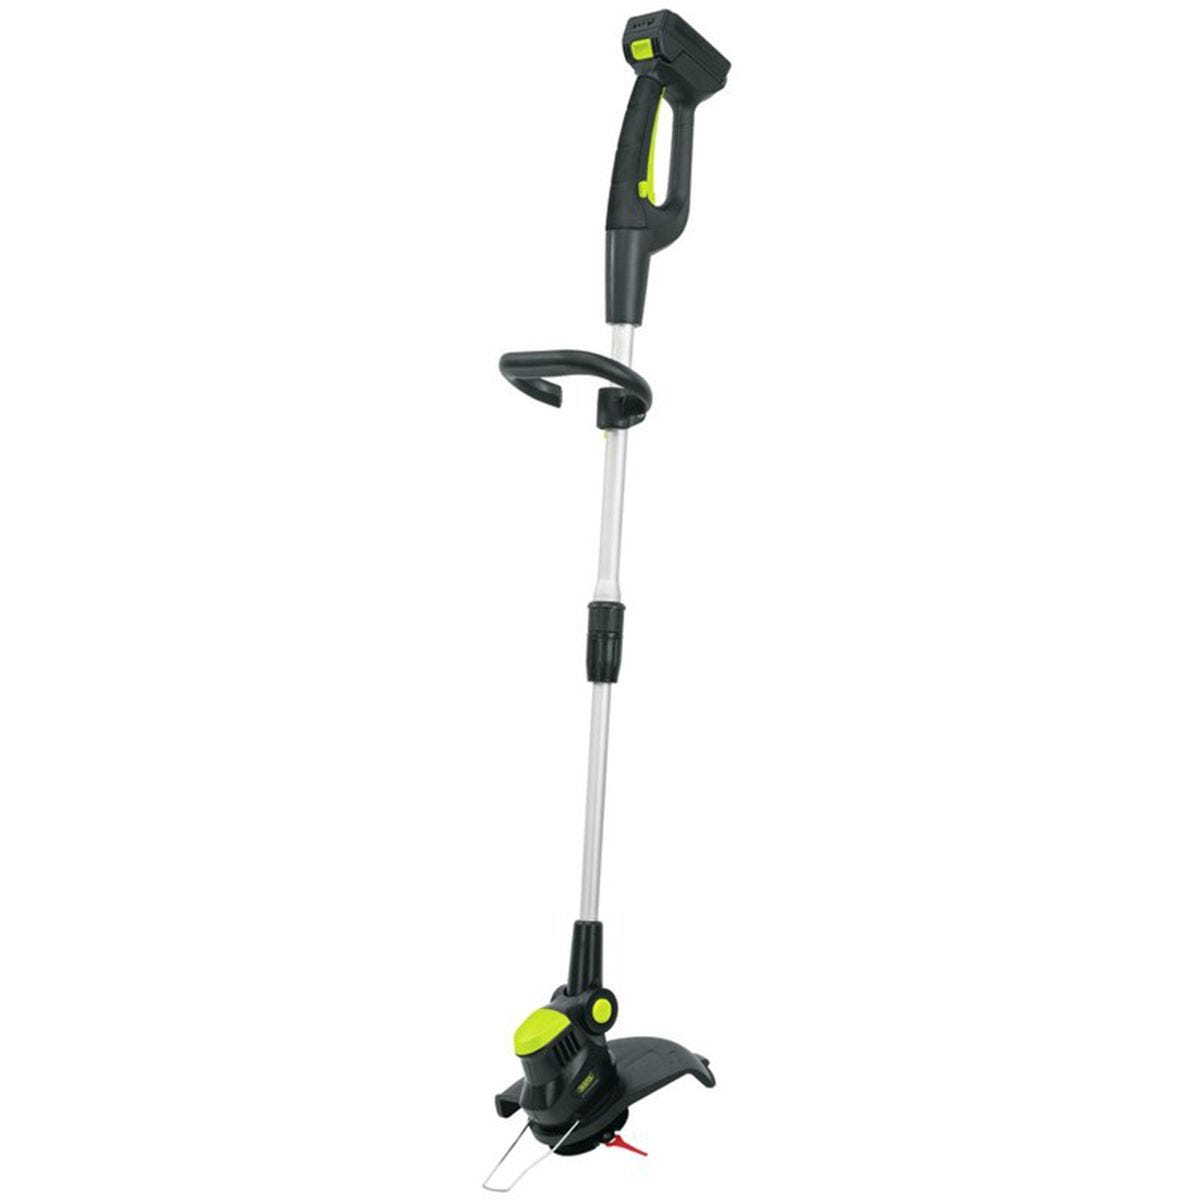 Draper 18V Cordless Li-ion Grass Trimmer with 2.0Ah Lithium Battery and Charger